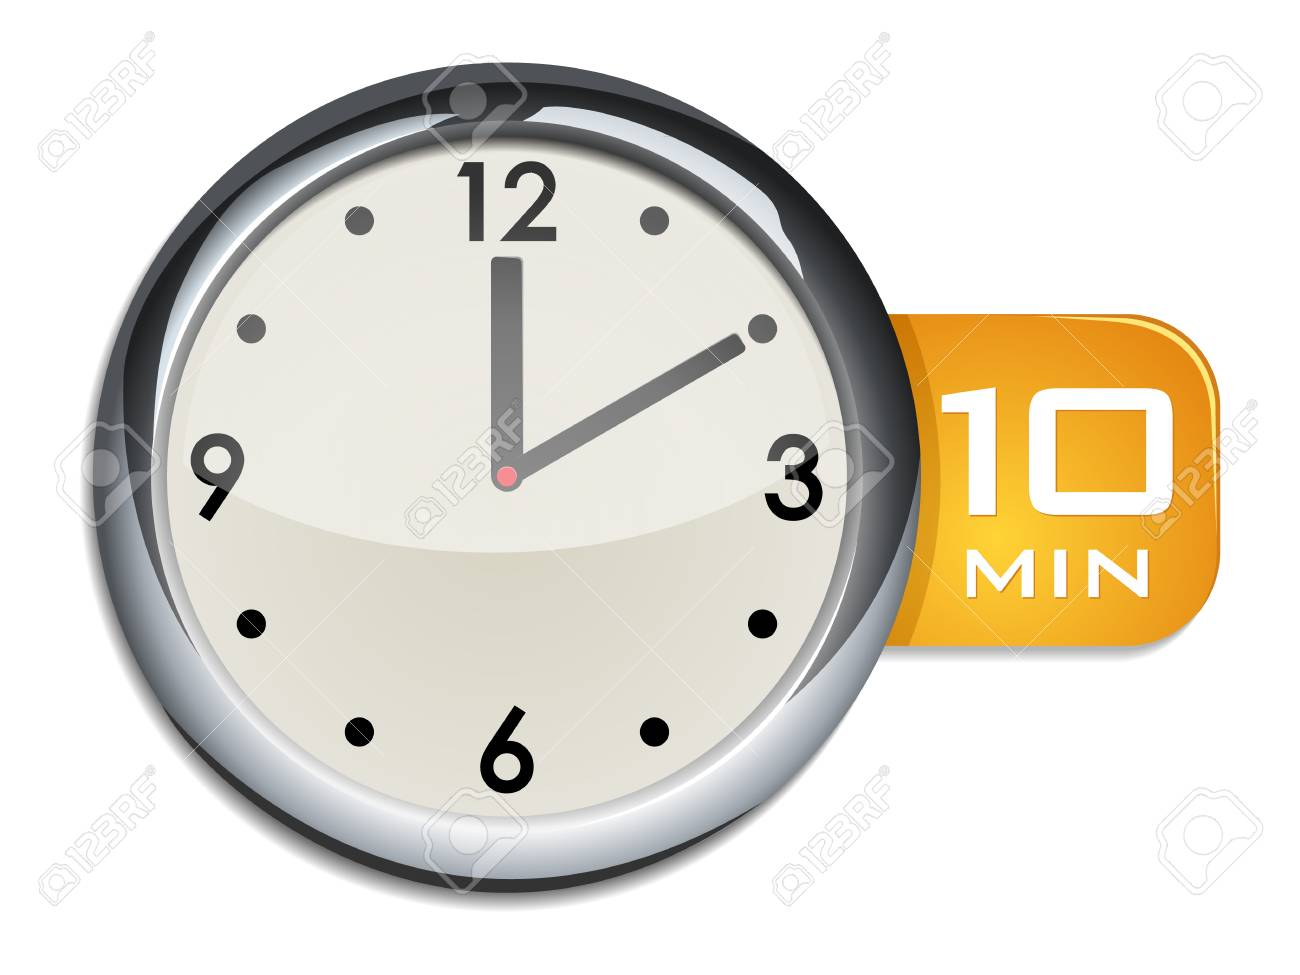 office wall clock timer 10 minutes royalty free cliparts vectors